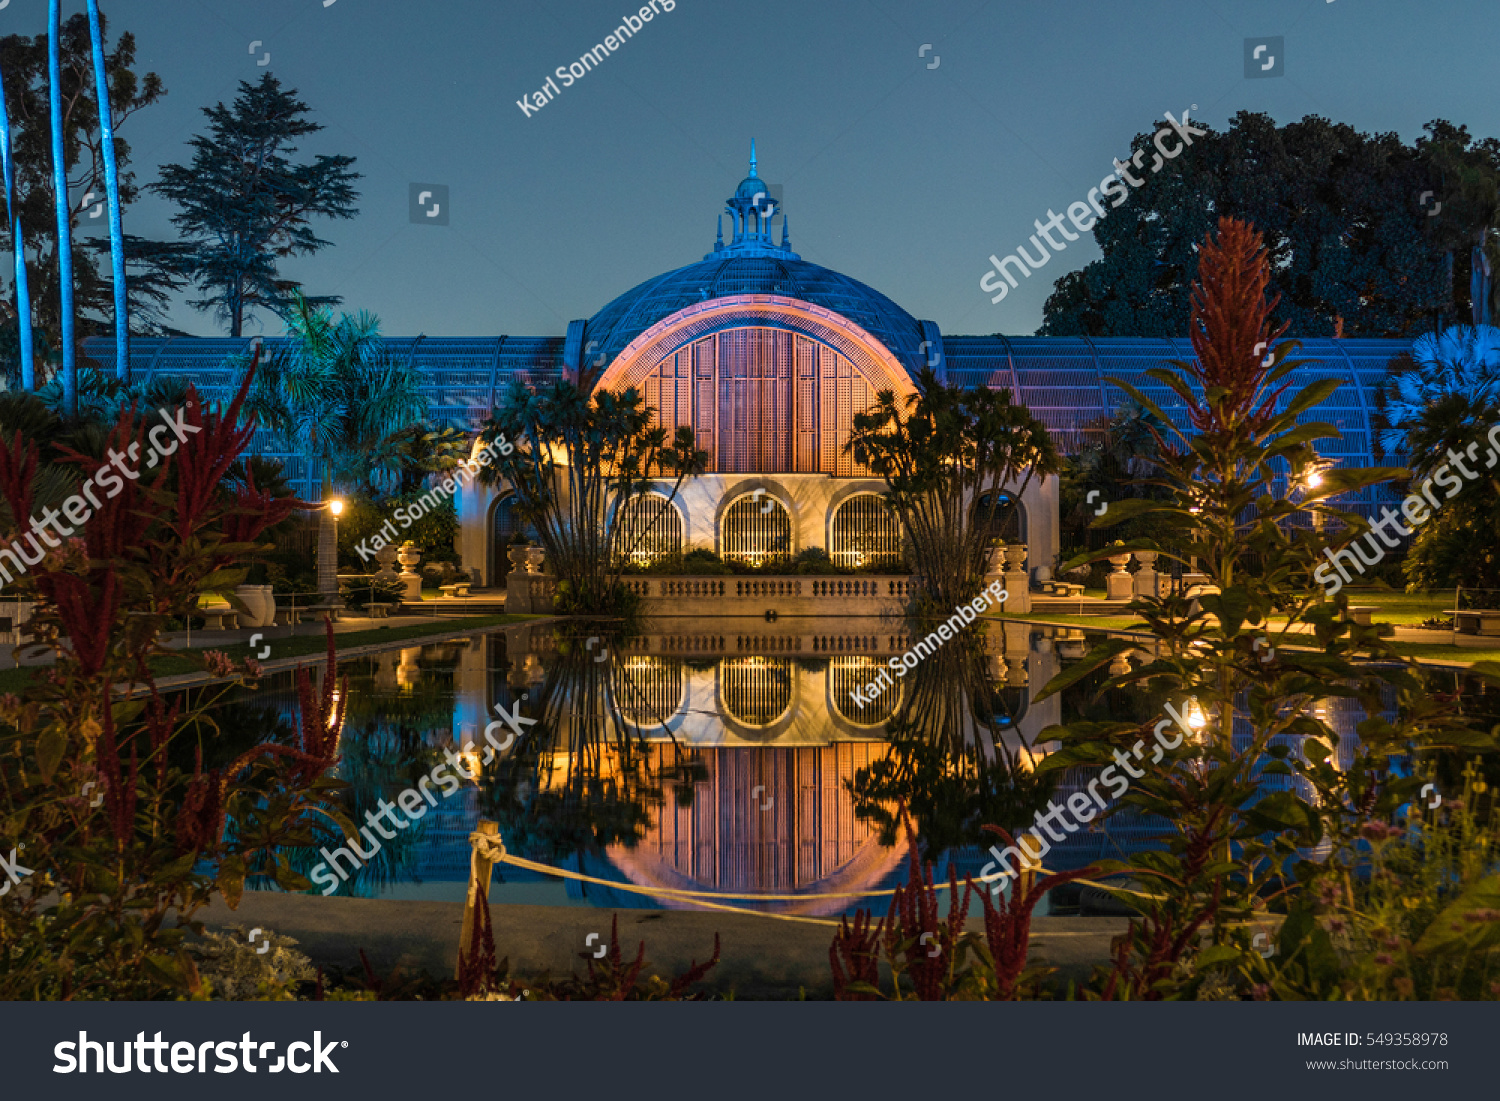 Balboa Park Botanical Building San Diego Stock Photo (Edit Now ...